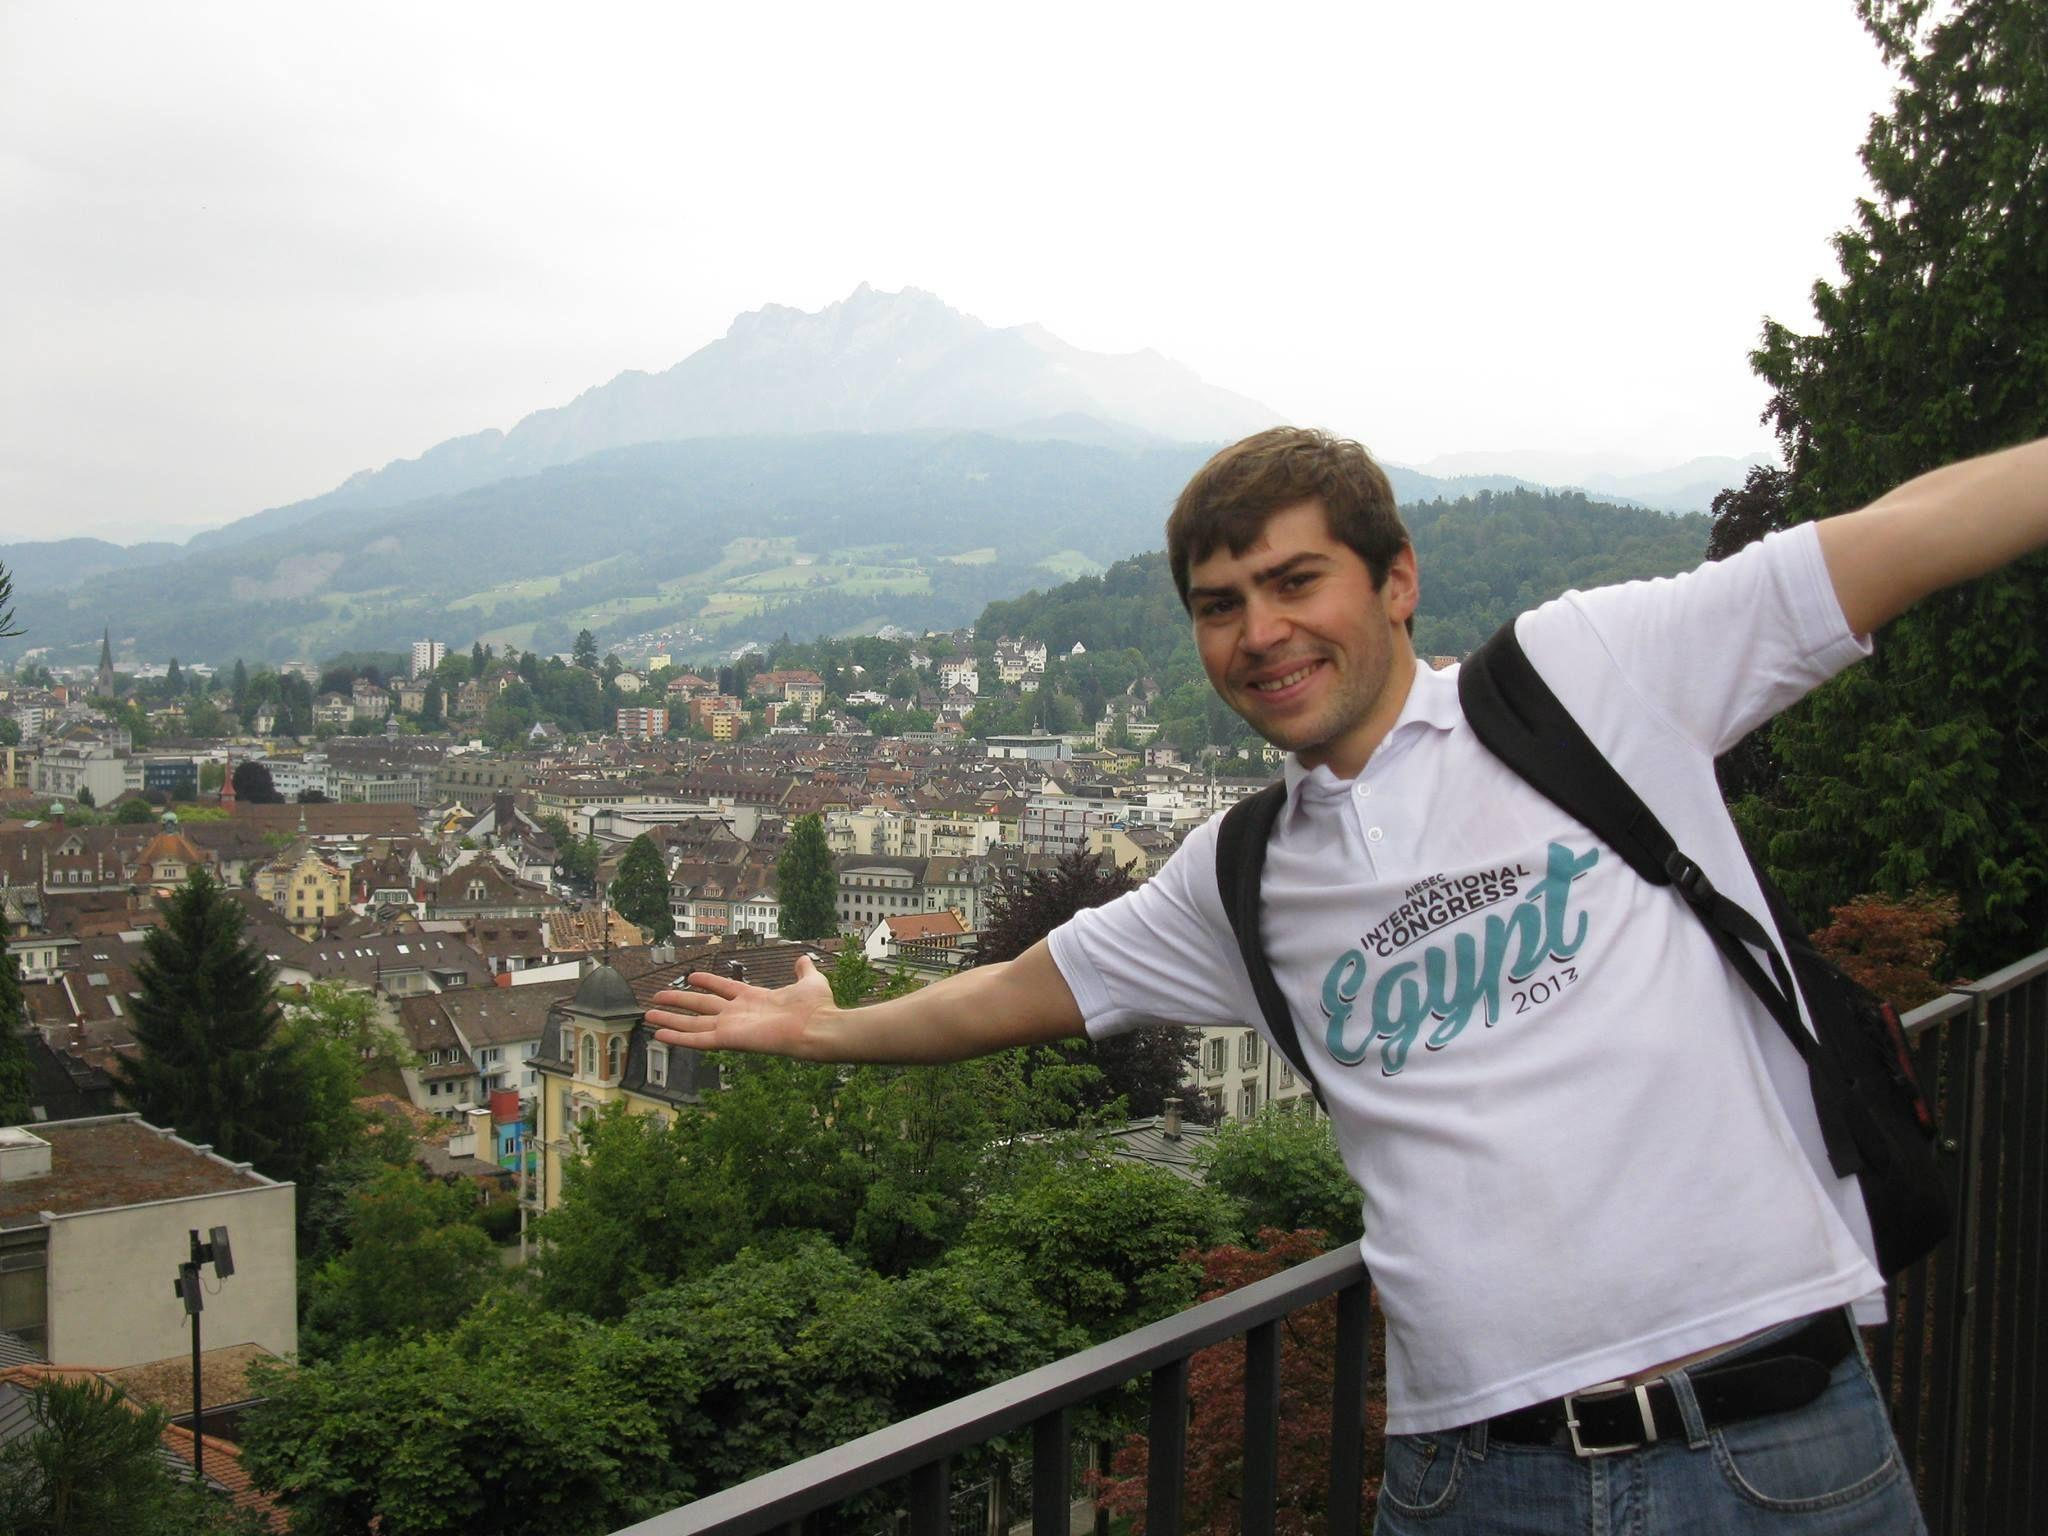 Adrian R. - Luzern and Central Switzerland Socializing (Luzern) | Meetup